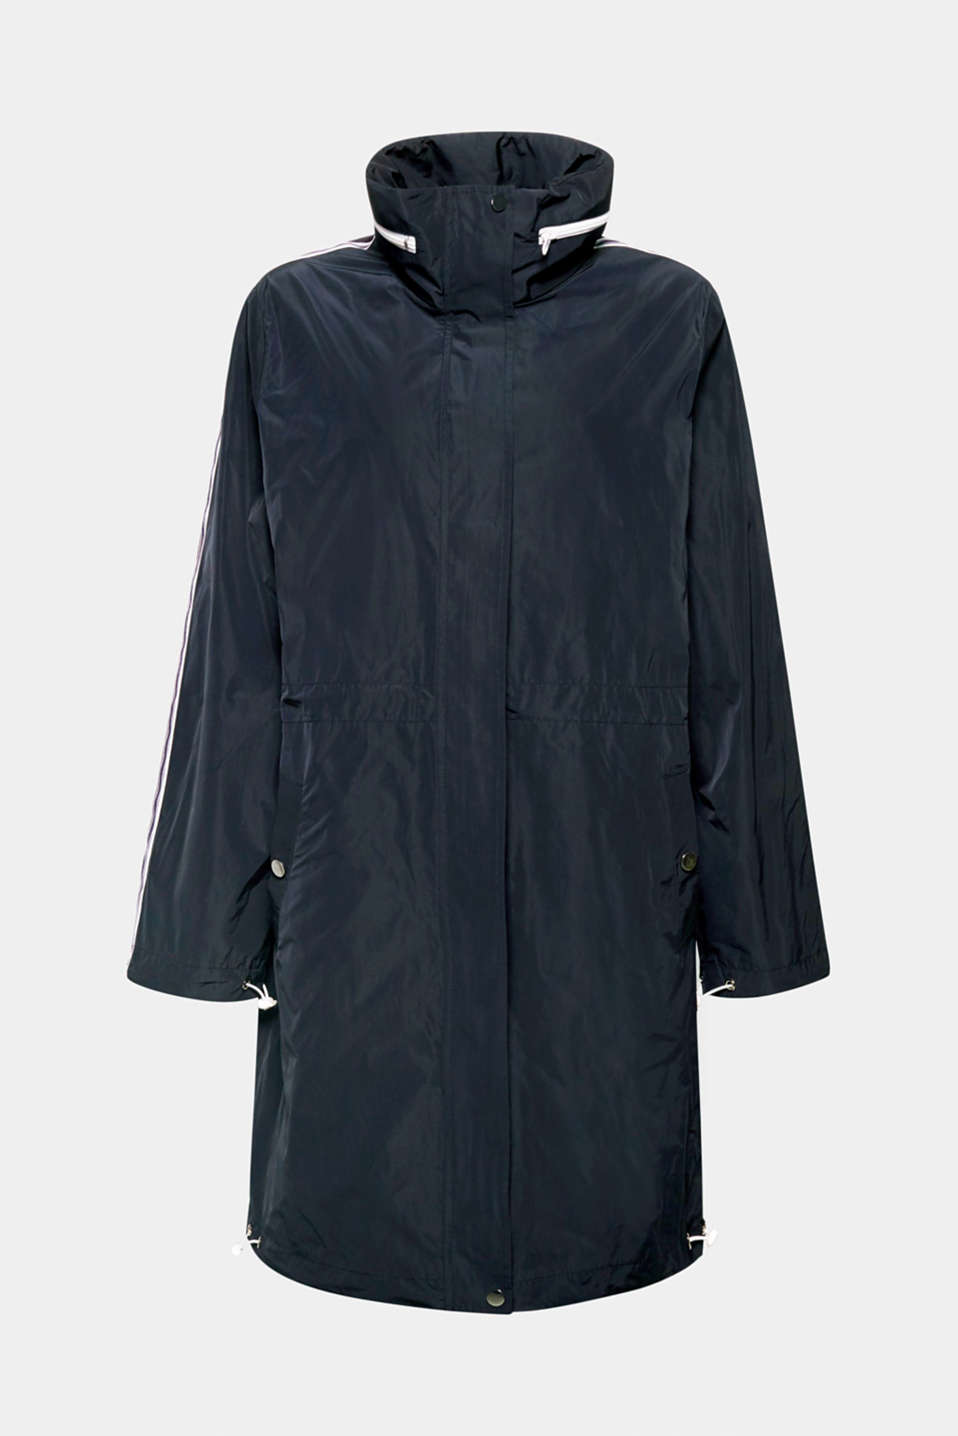 This casual nylon coat is perfect for between seasons and comes with comfortable jersey lining, a concealed hood and a drawstring waist!